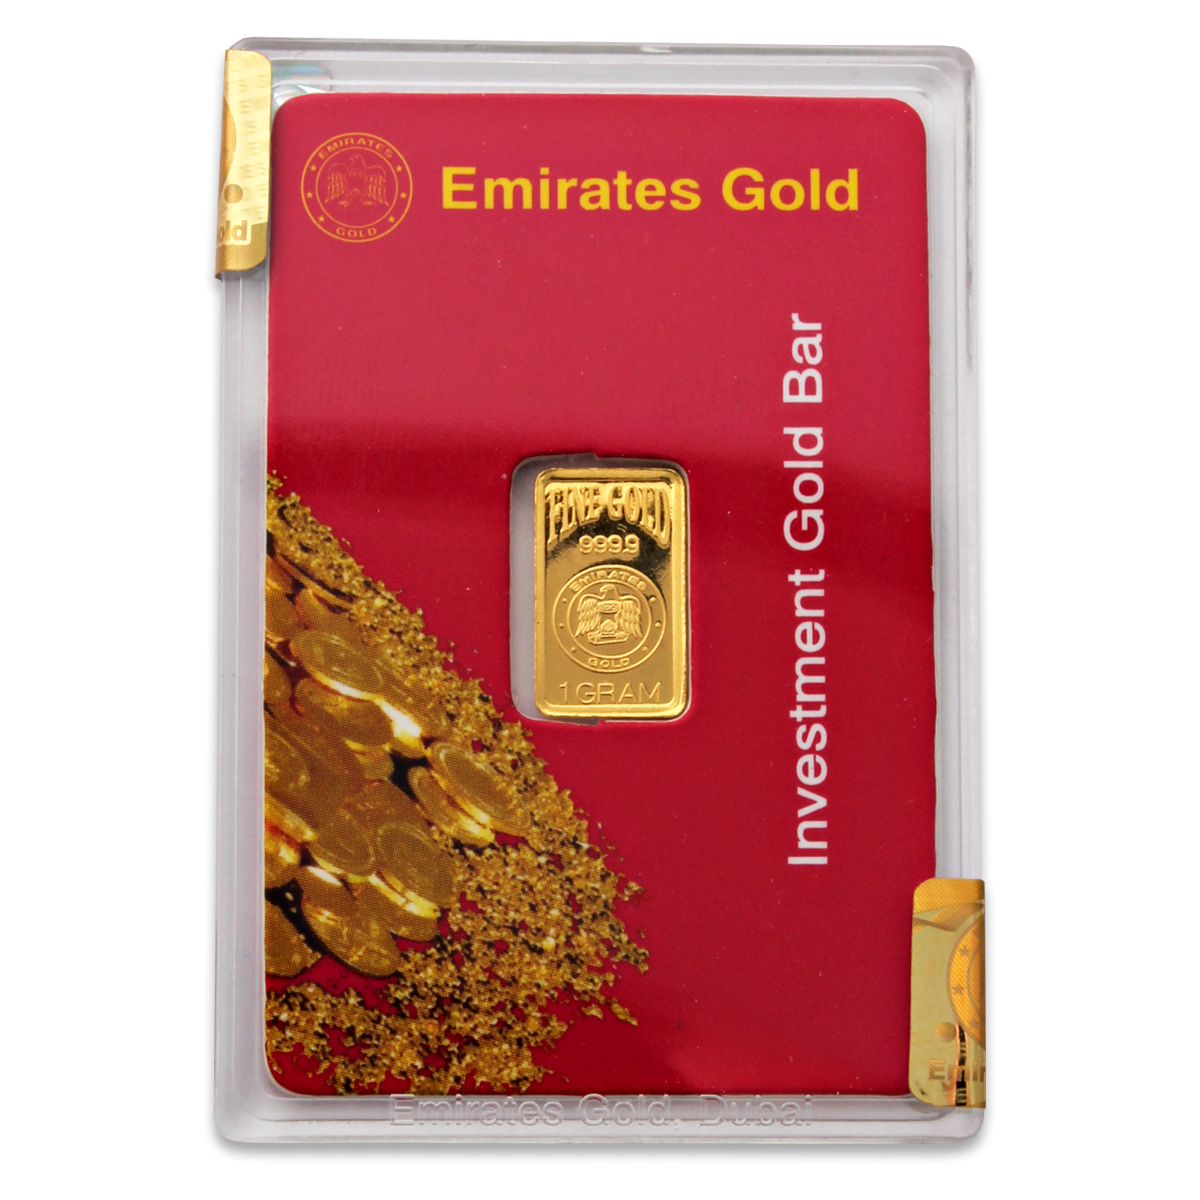 Emirates Gold 1 Gram Gold Bar 24 Carat Gold Bullion Co